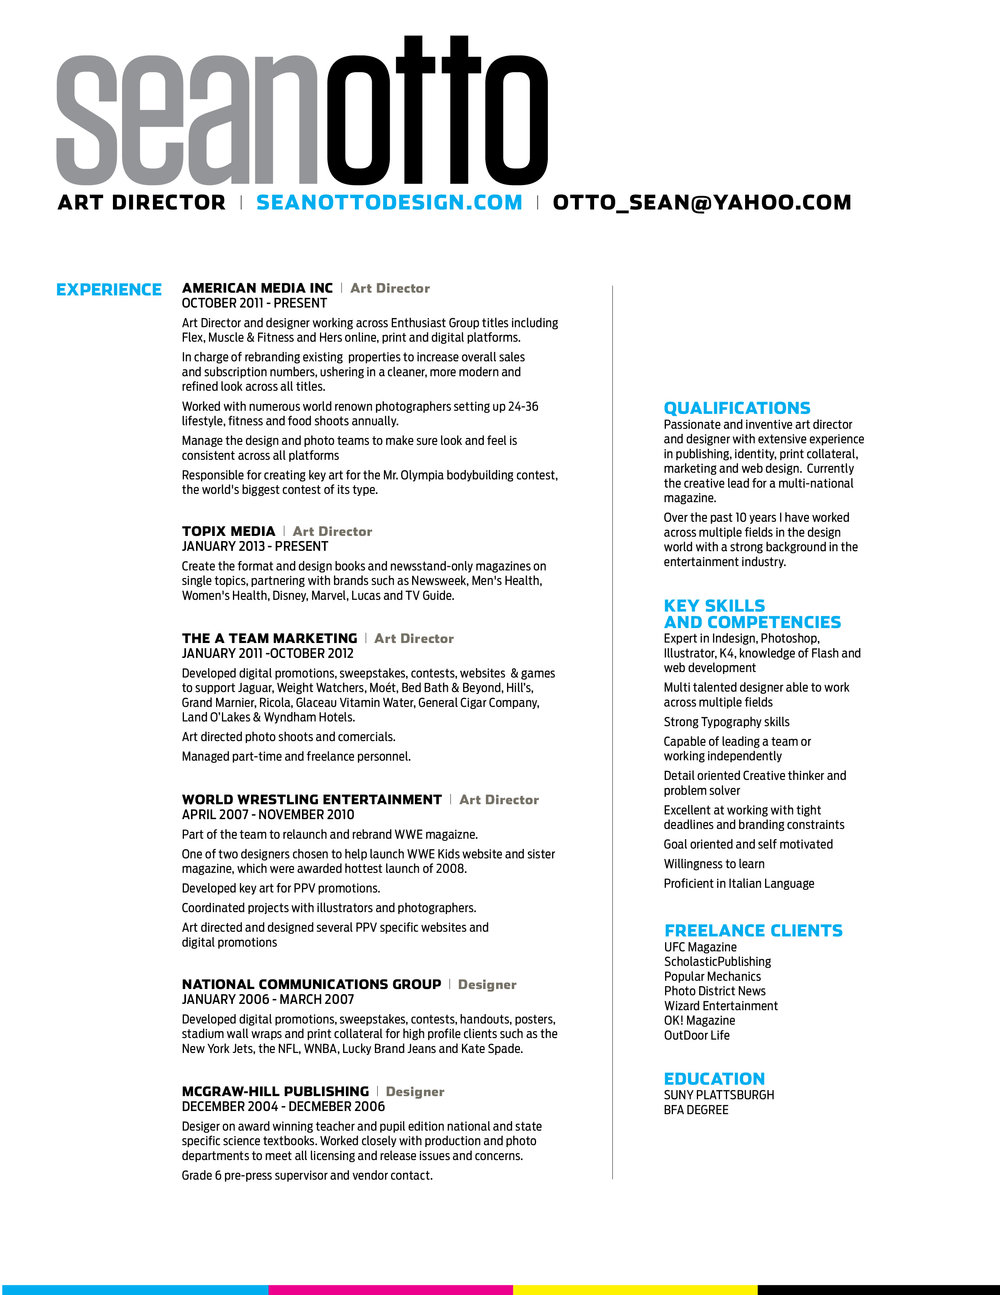 Sean Otto/Art Director  Entertainment Industry Resume